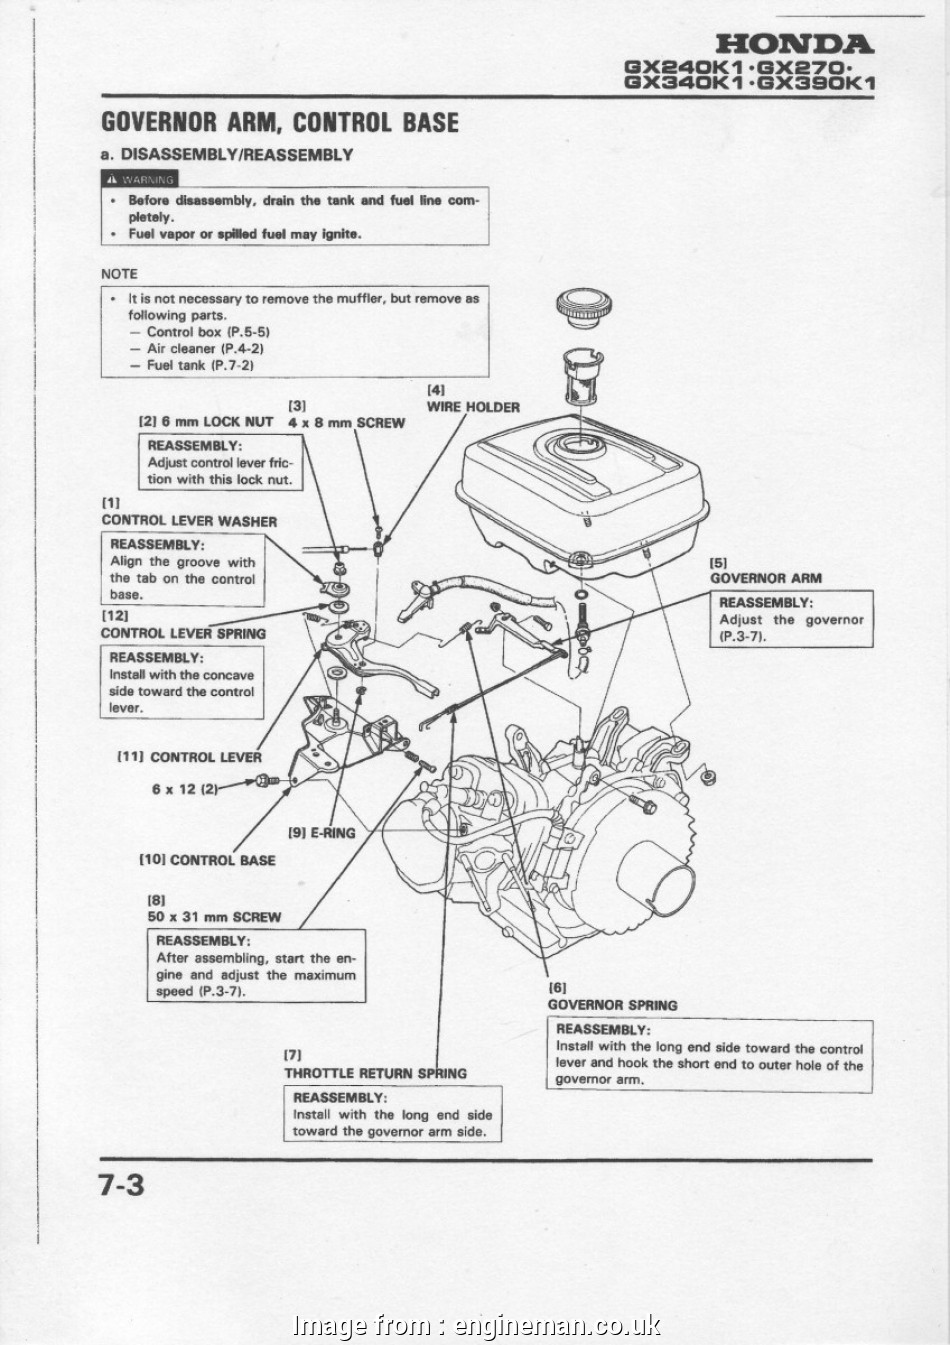 DIAGRAM] Honda Gx240 Wiring Diagram FULL Version HD Quality Wiring Diagram  - EARDIAGRAM.CADUMUNTE.ITeardiagram.cadumunte.it